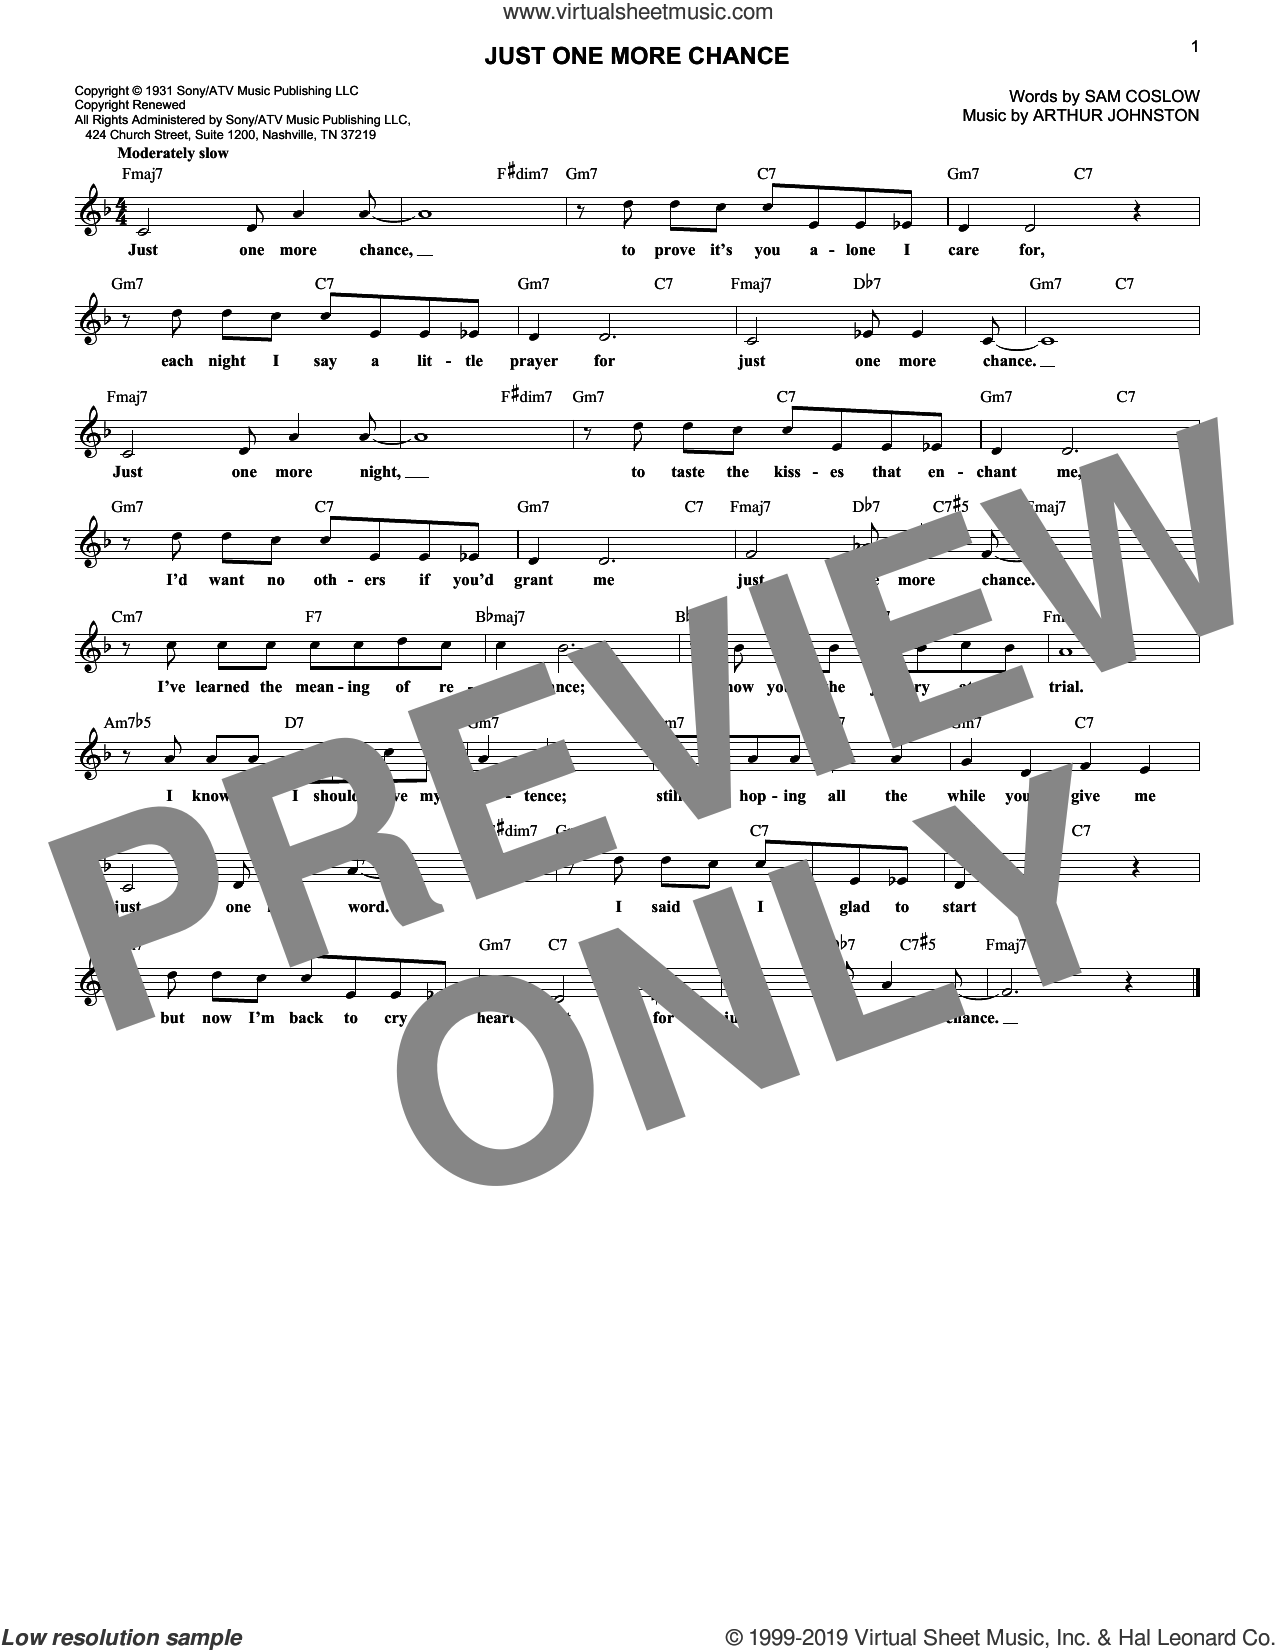 Just One More Chance sheet music for voice and other instruments (fake book) by Ruby Braff, Arthur Johnston and Sam Coslow, intermediate skill level